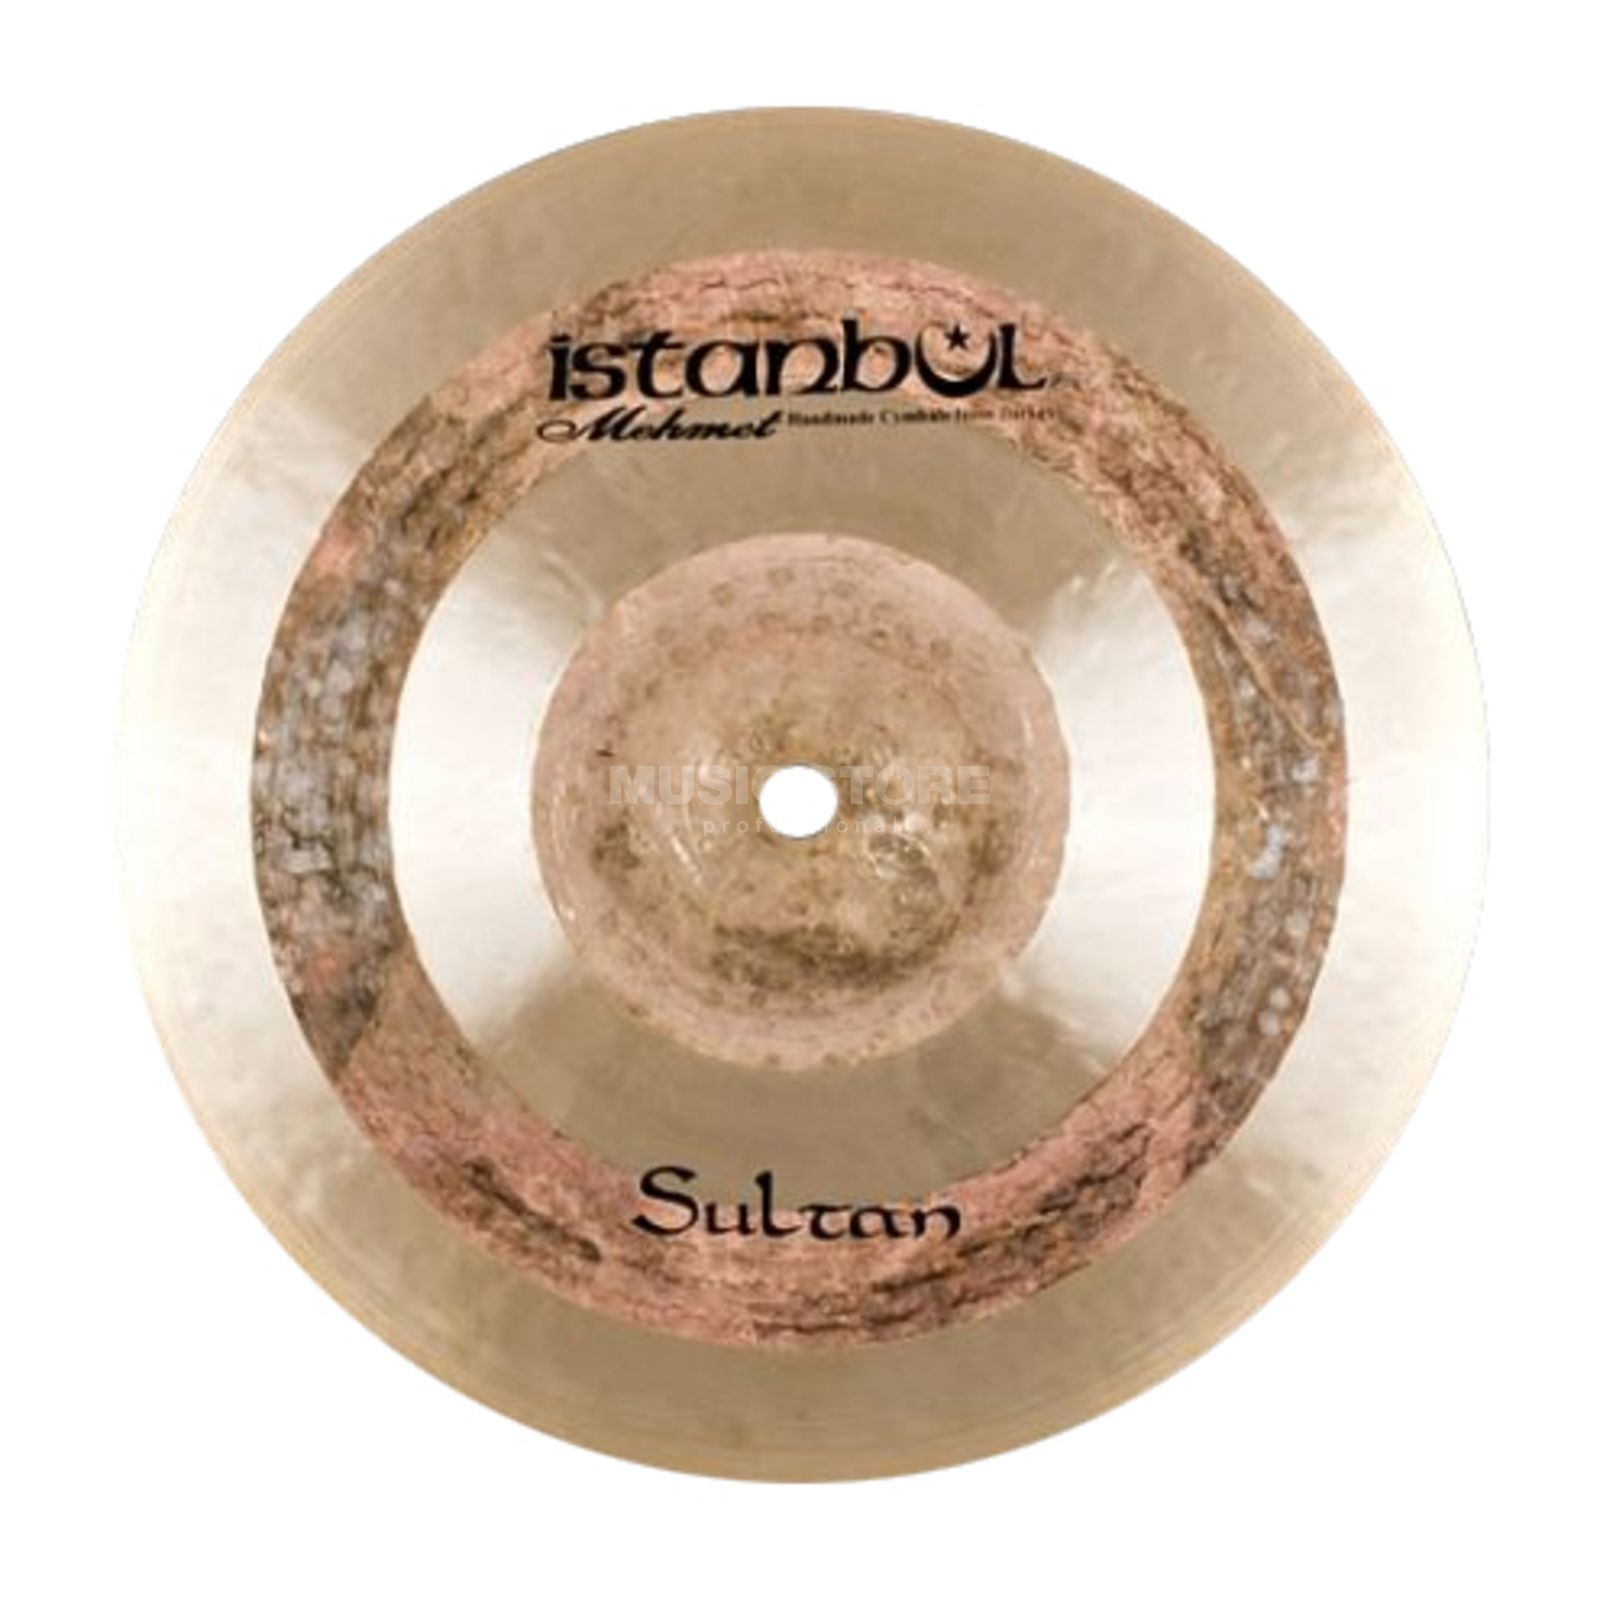 "Istanbul Sultan Splash 6"", SPS7 Product Image"